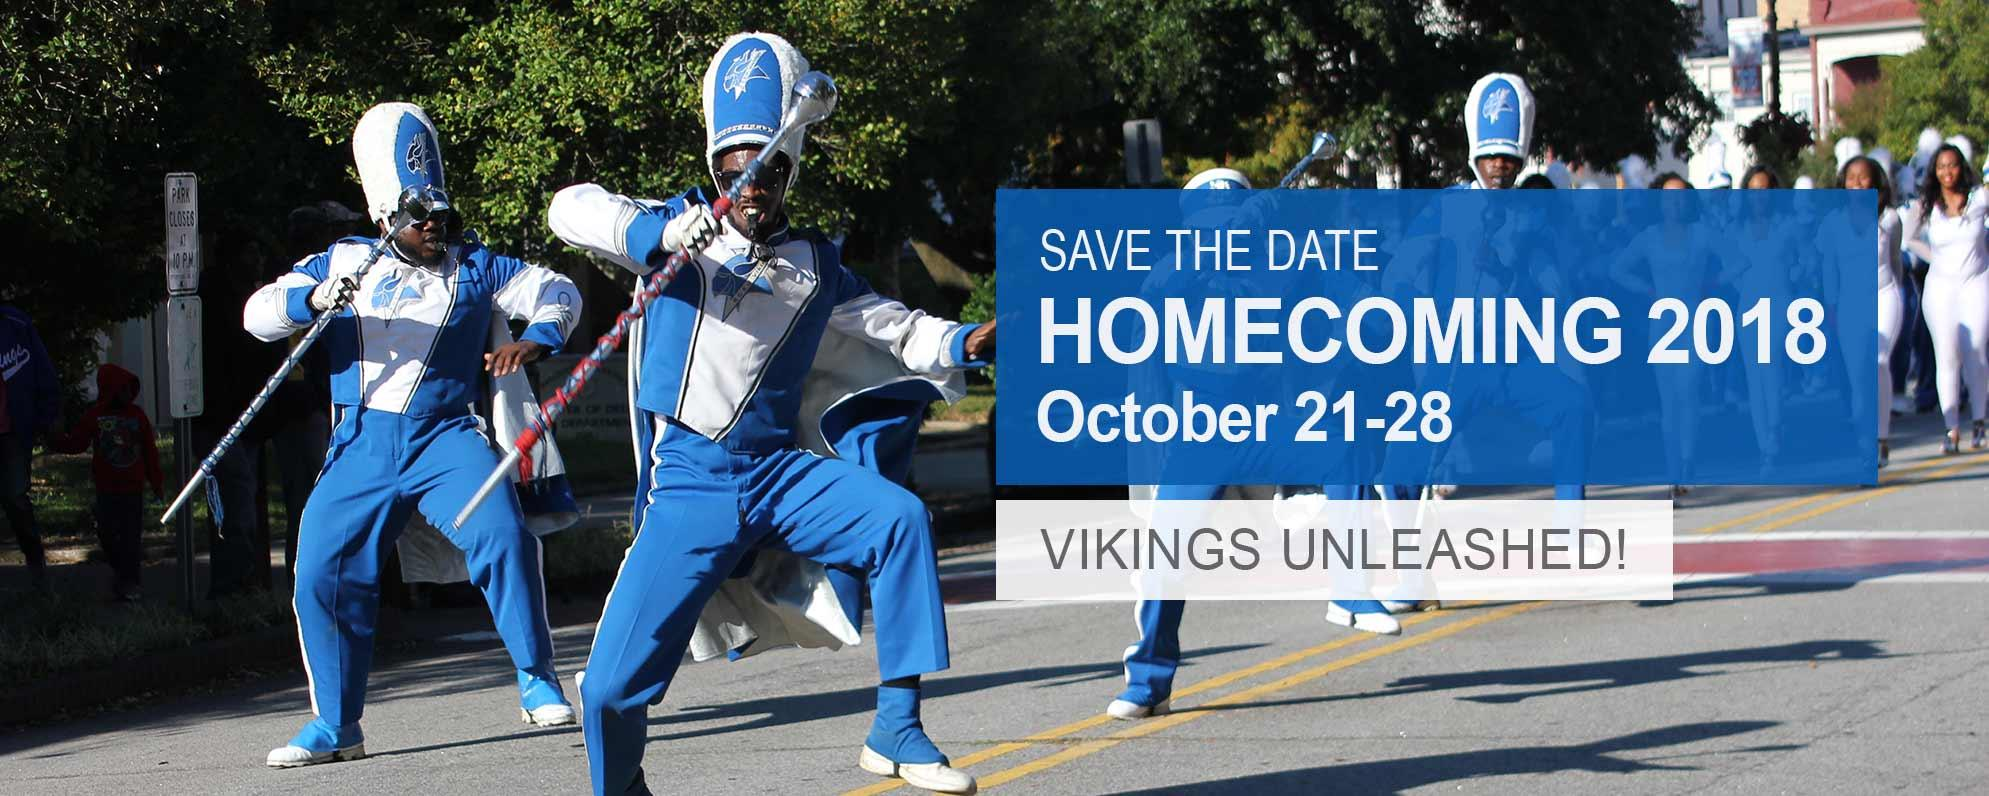 Save the Date: Homecoming 2018